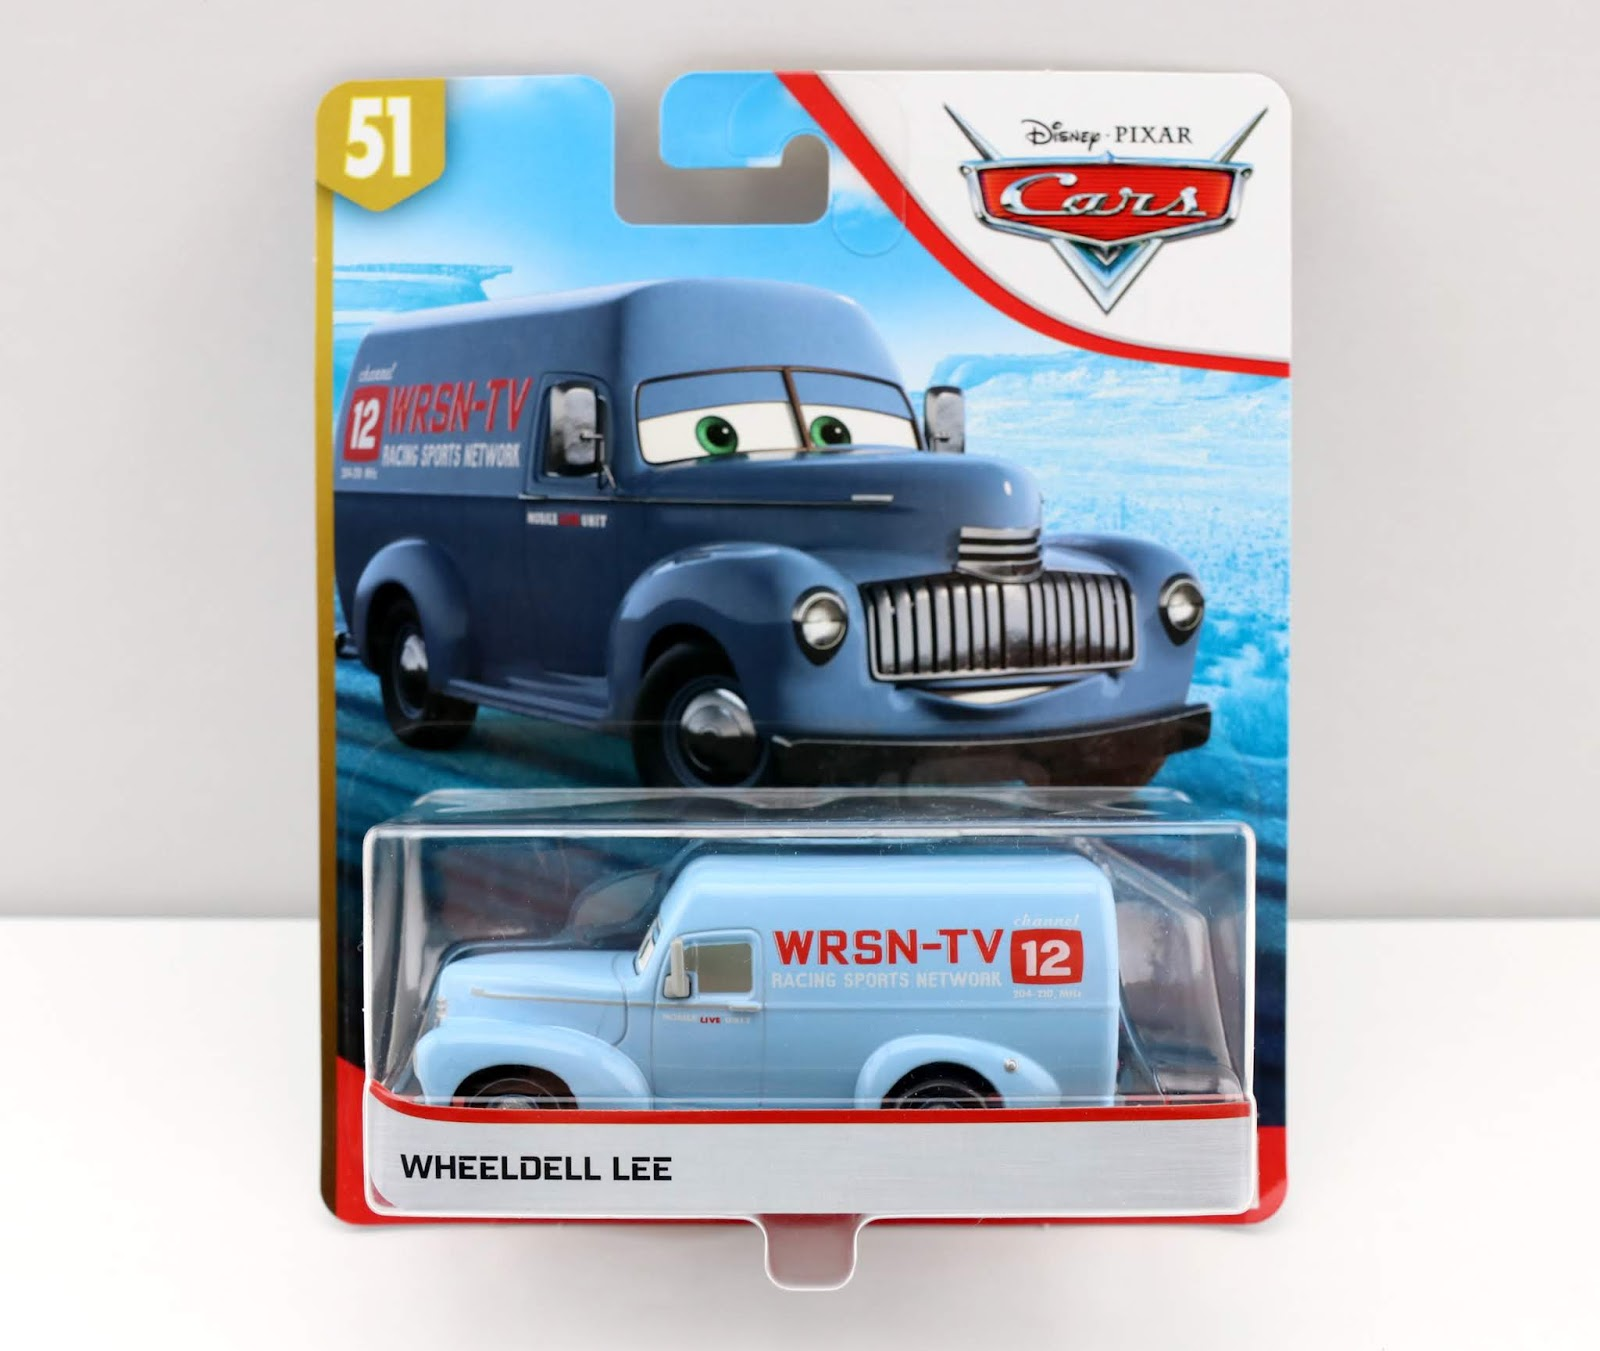 Cars 3 Wheeldell Lee diecast